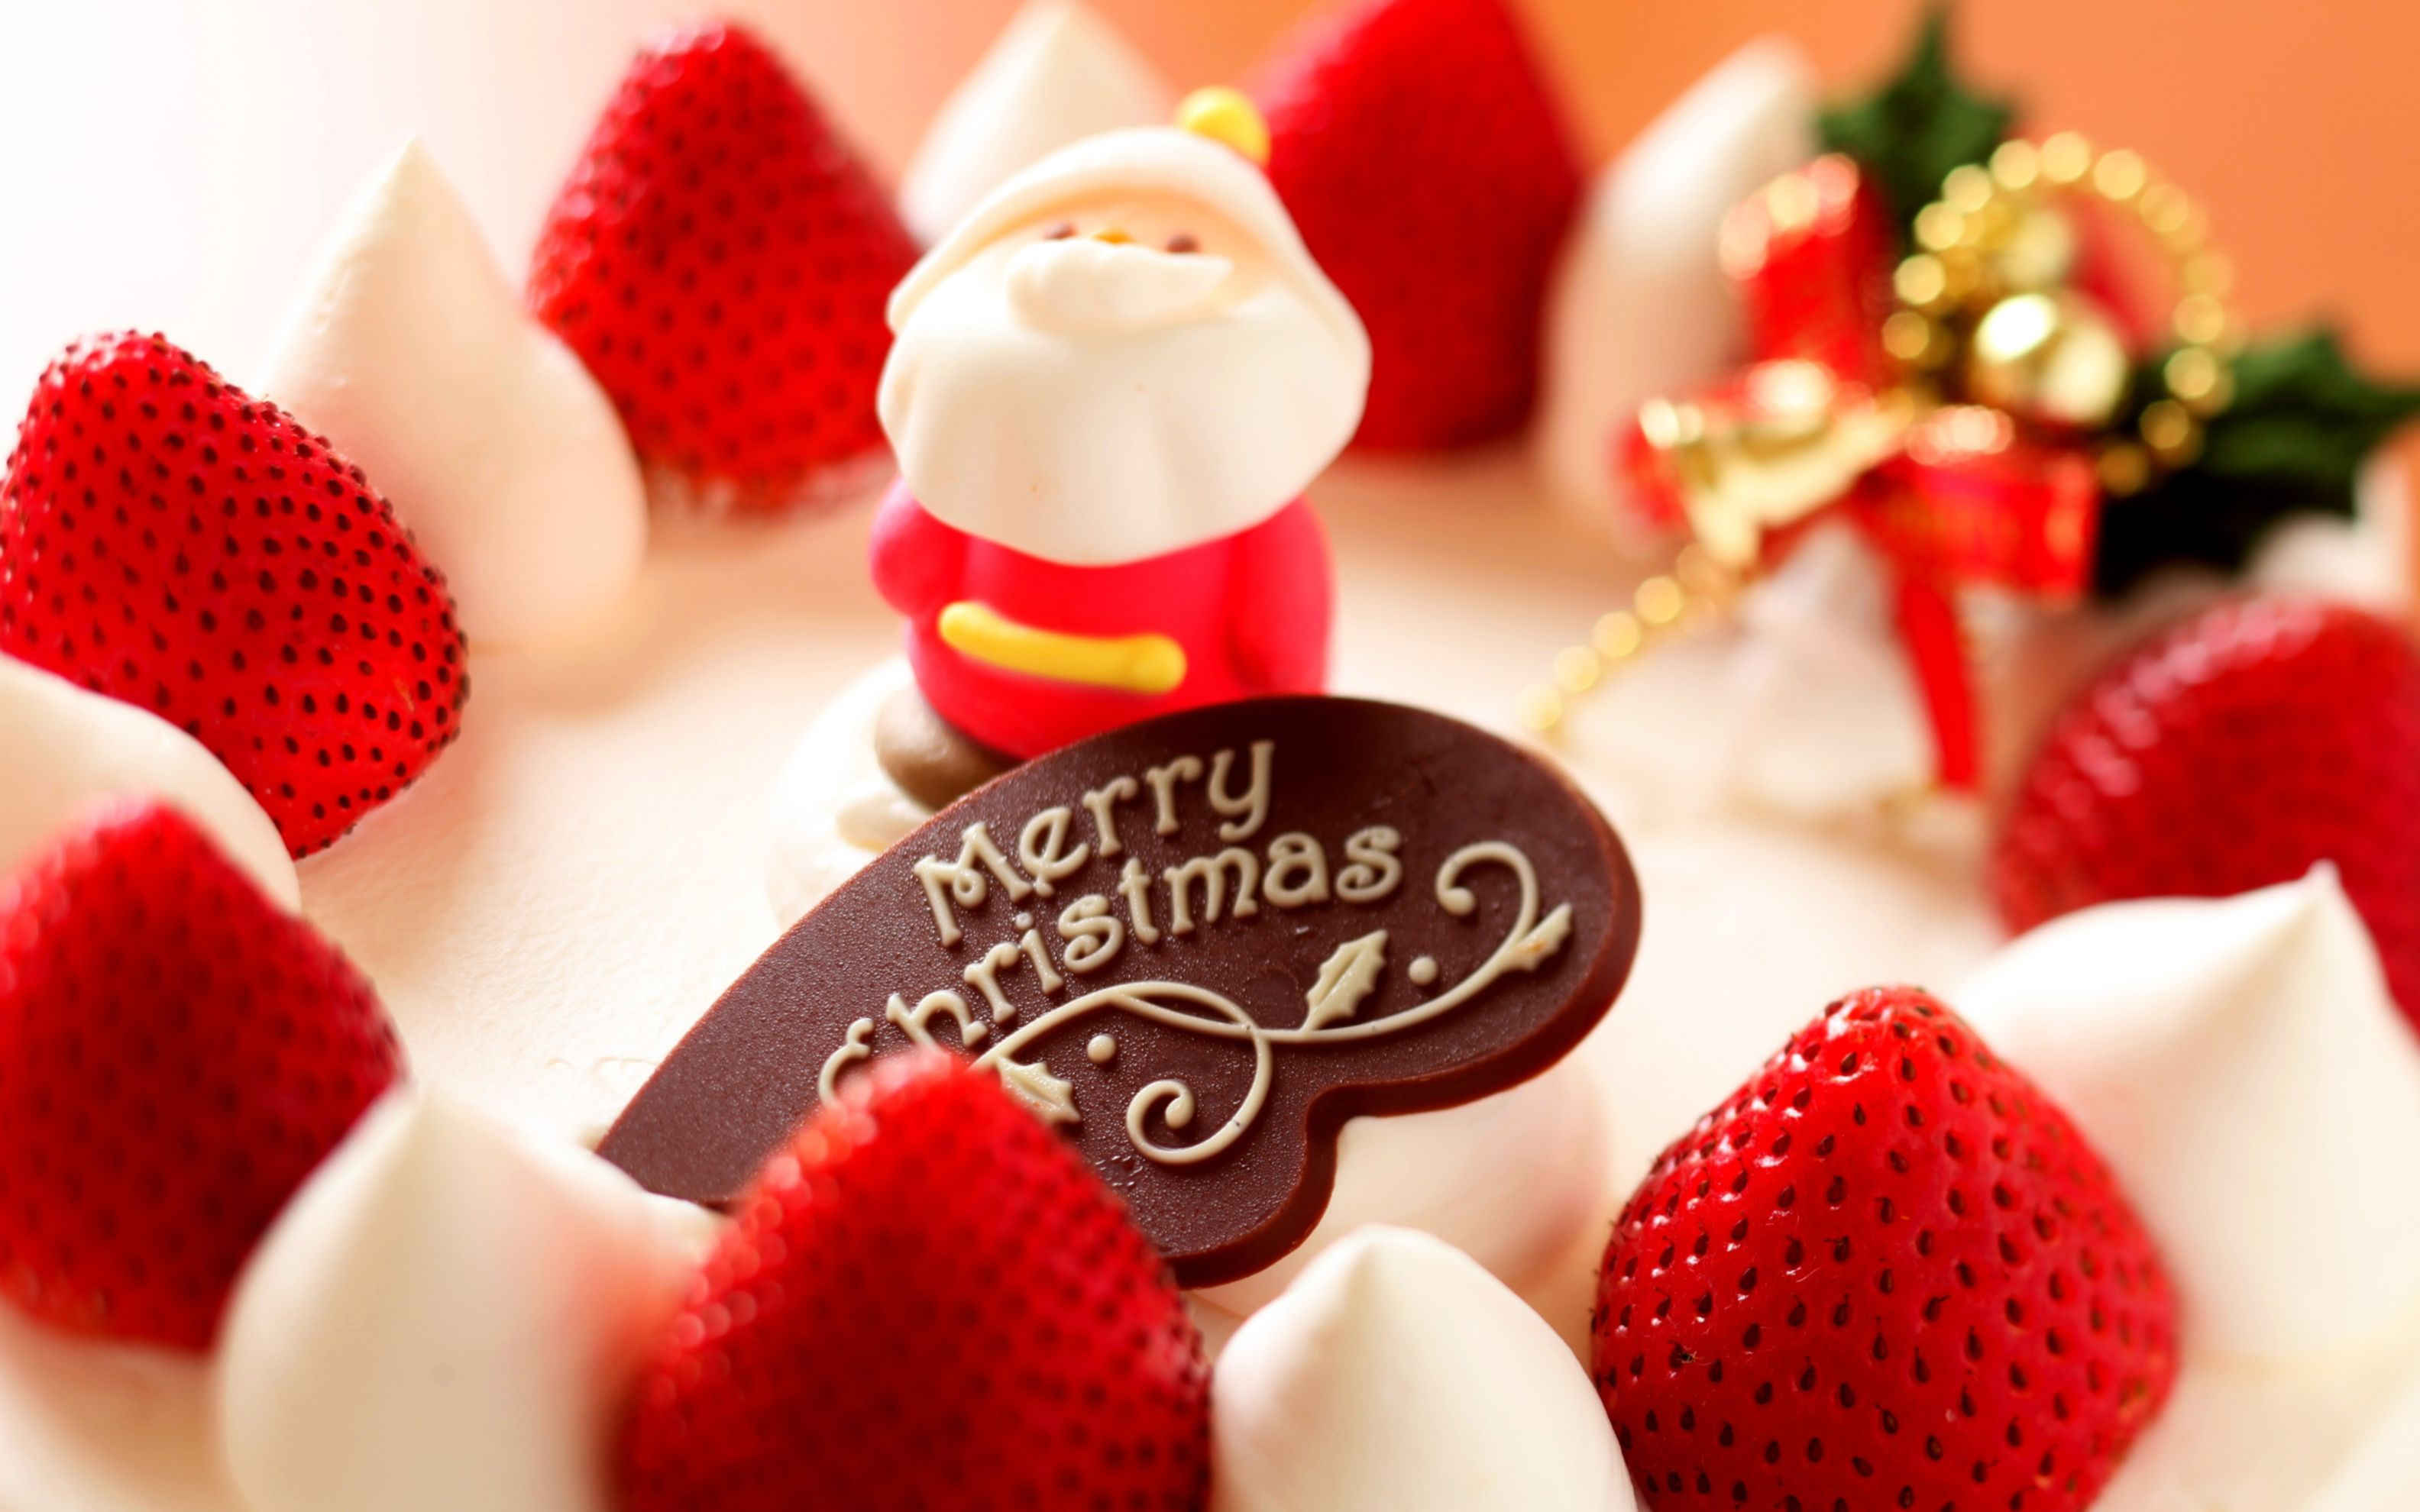 Download free HD Merry Christmas Strawberry Dessert Wide Wallpaper, image